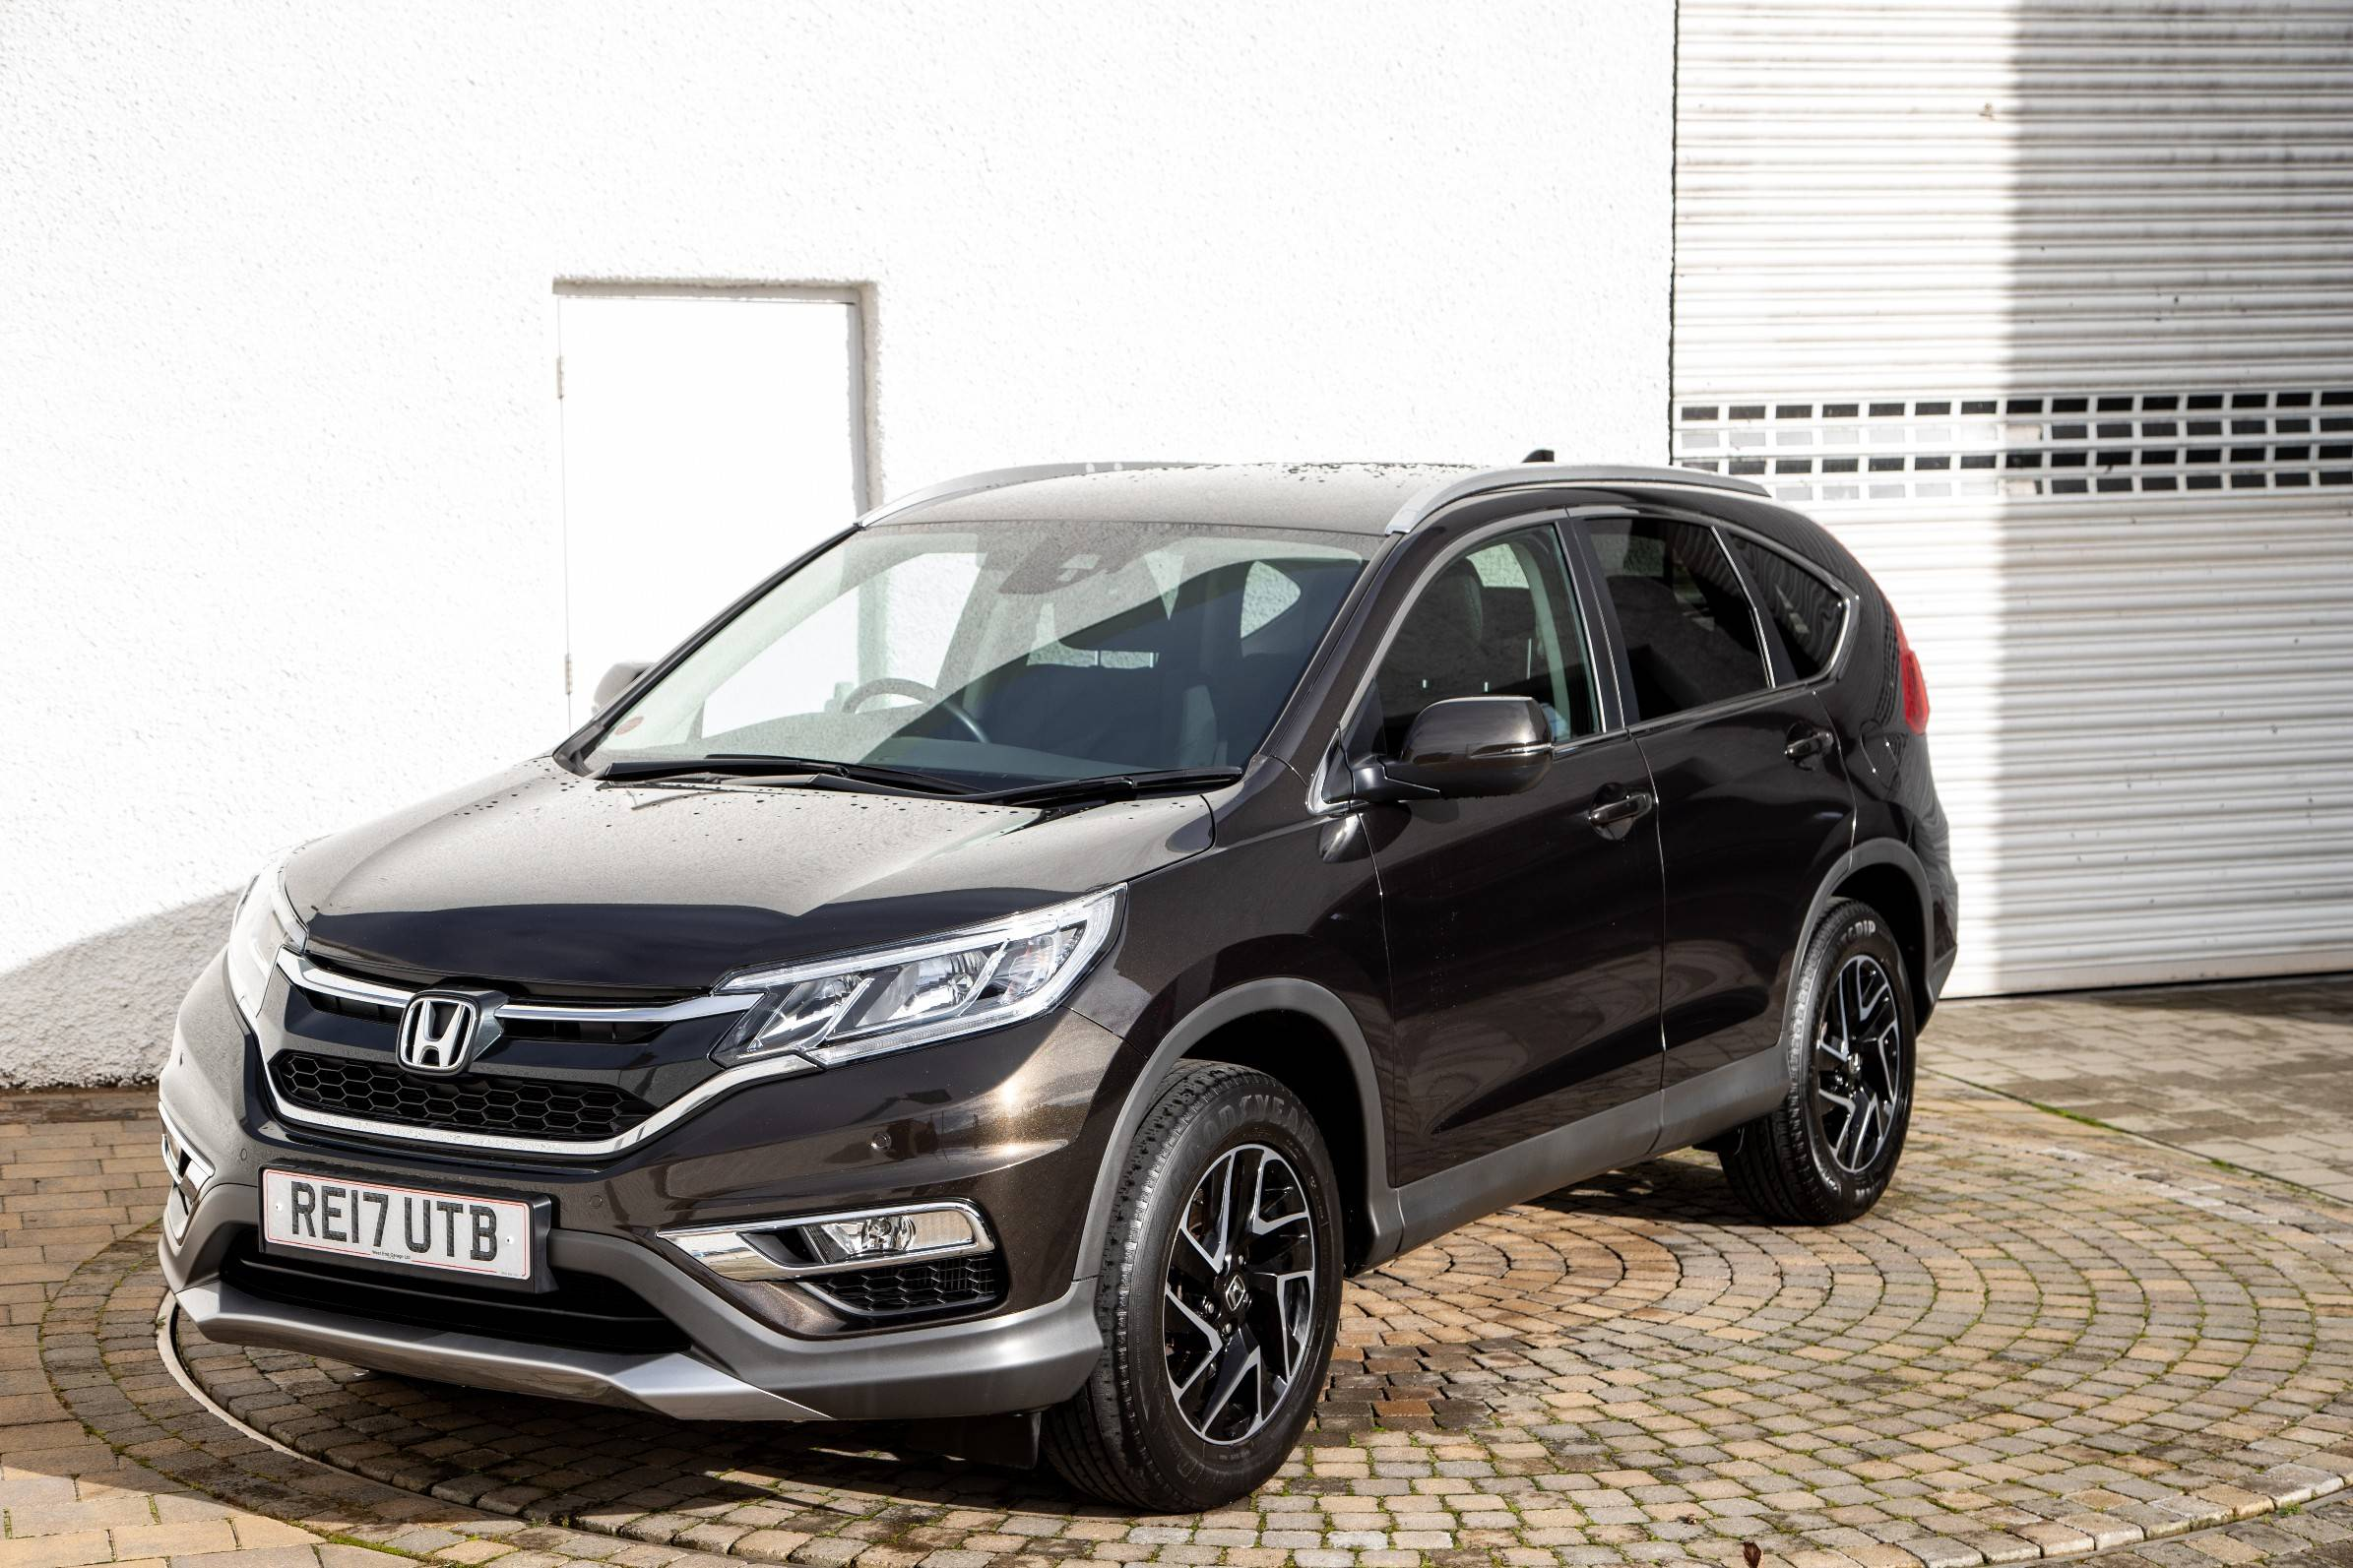 CR-V 1.6 i-DTEC 160 SE Plus 5dr